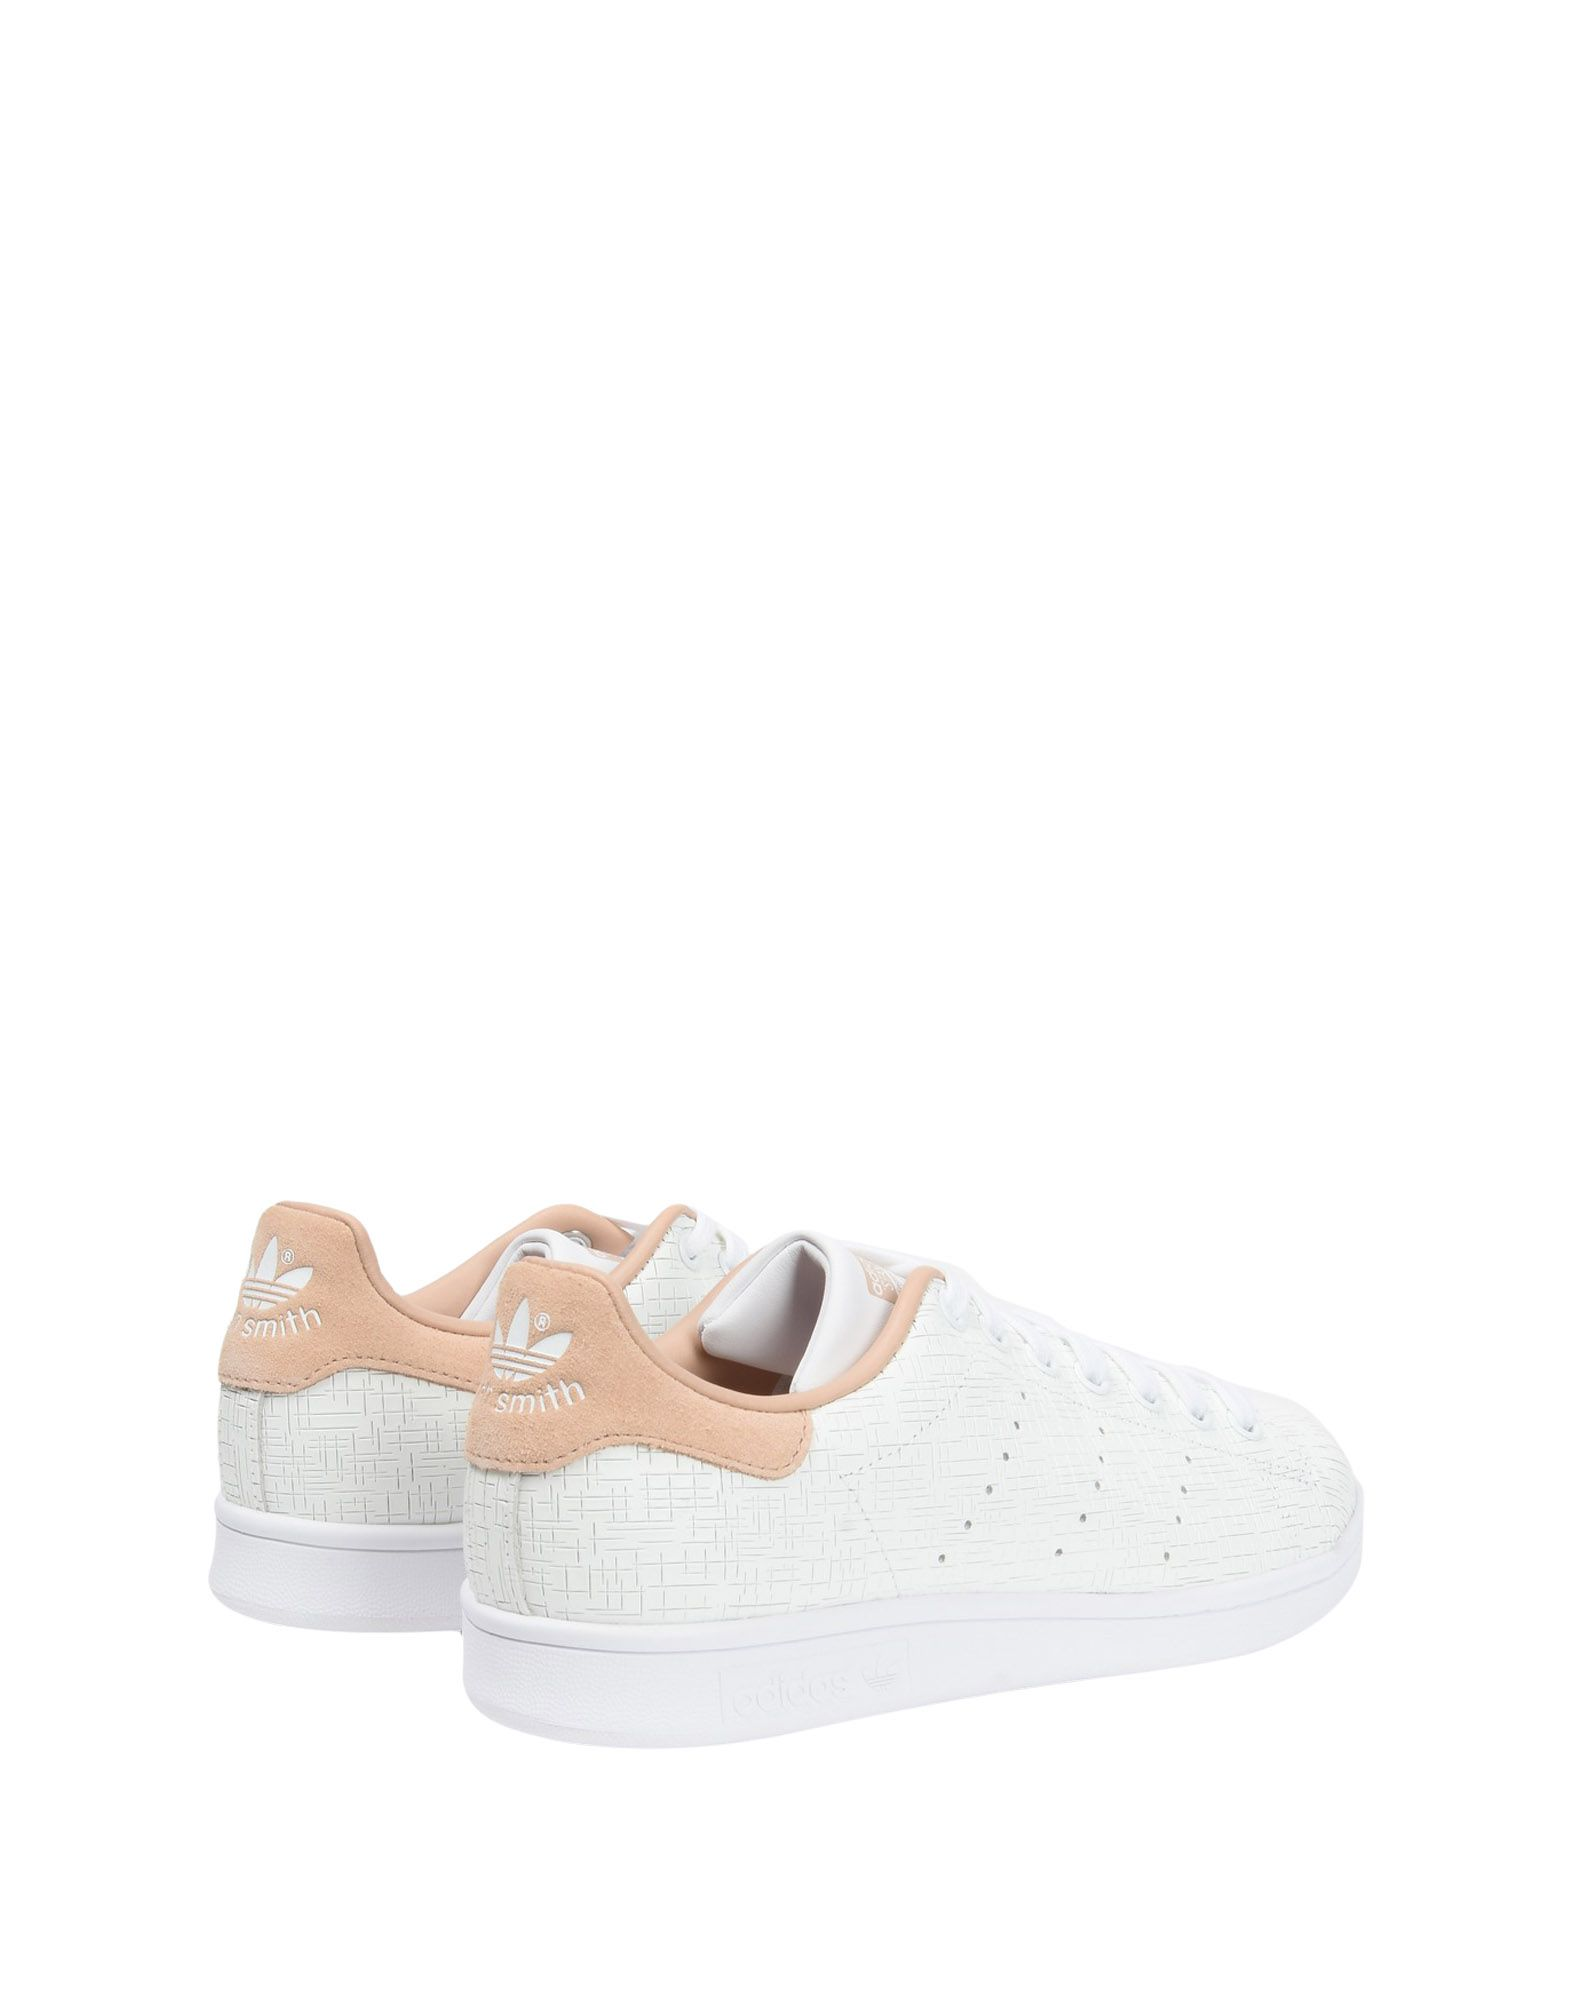 Sneakers Adidas Originals Stan Smith W - Femme - Sneakers Adidas Originals sur